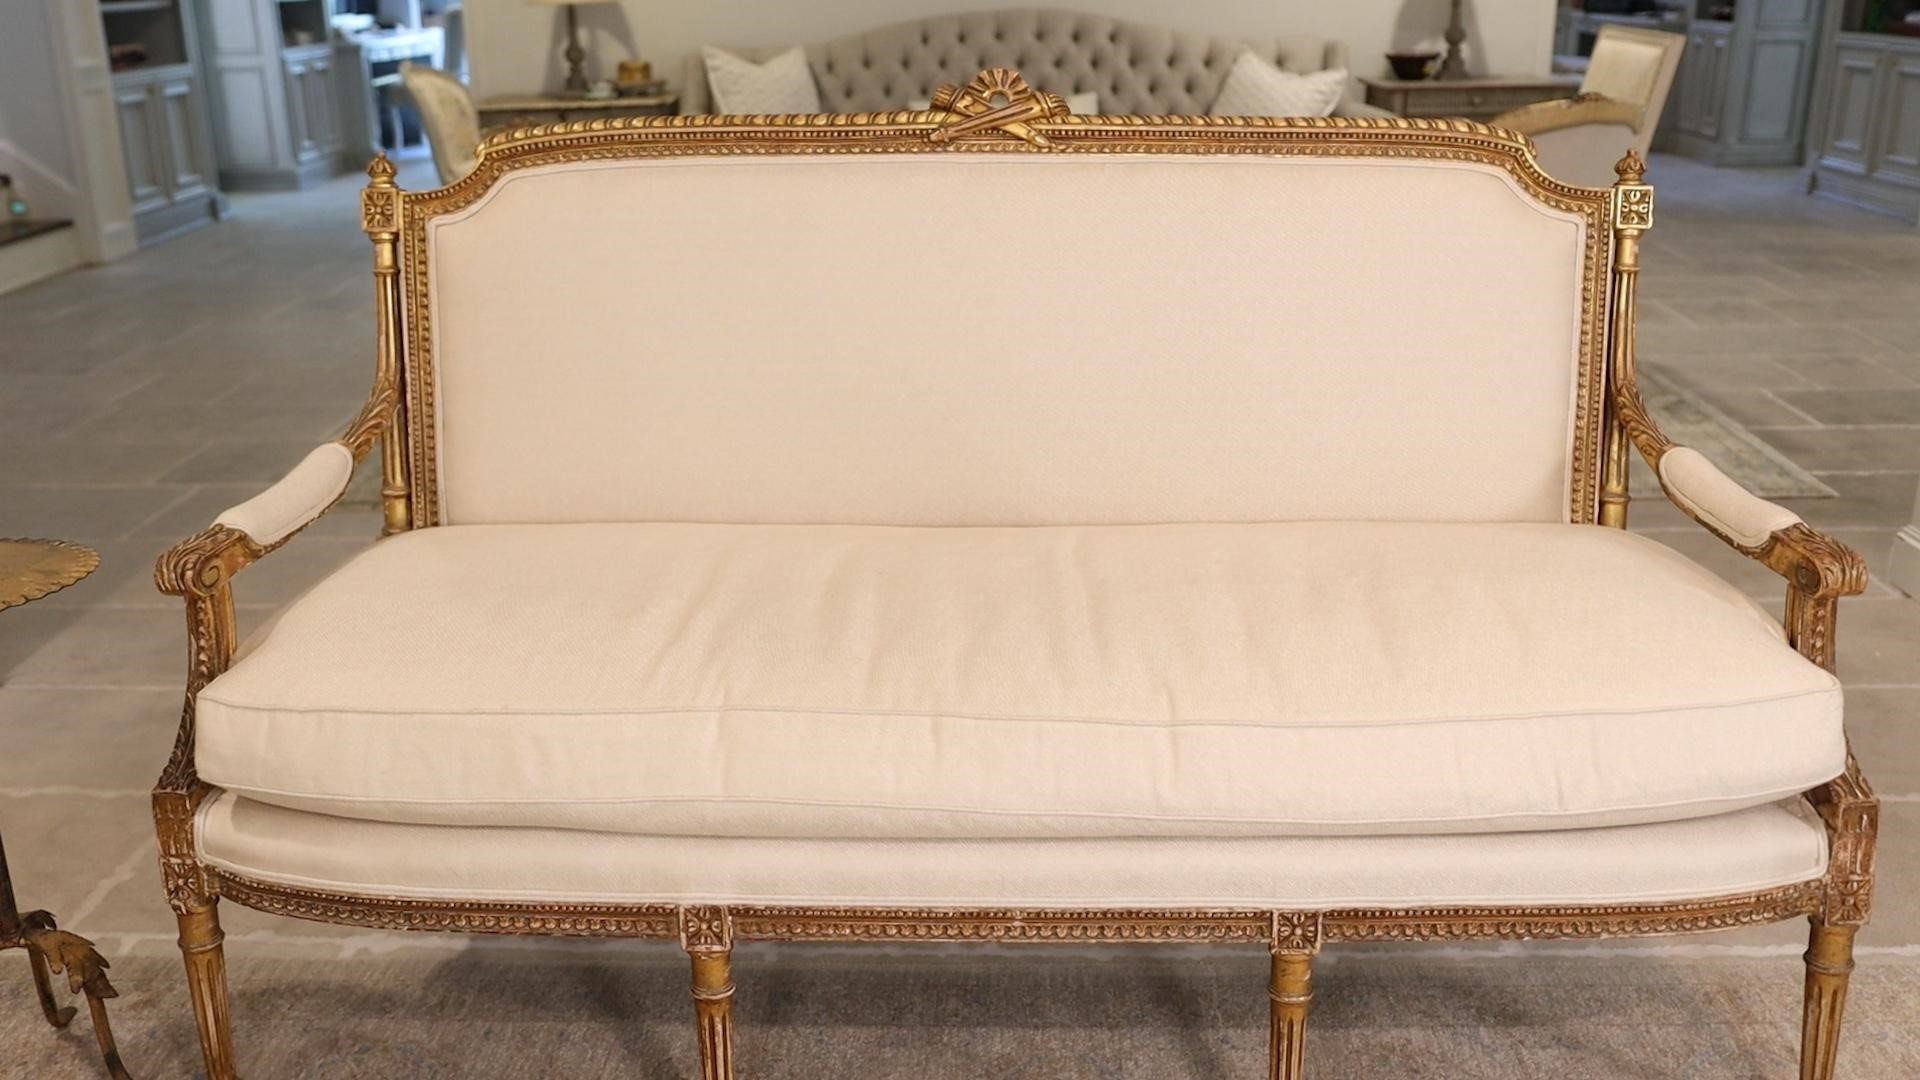 French country furniture settee with cream fabric and gold-gilt trim and carved details, by Amitha